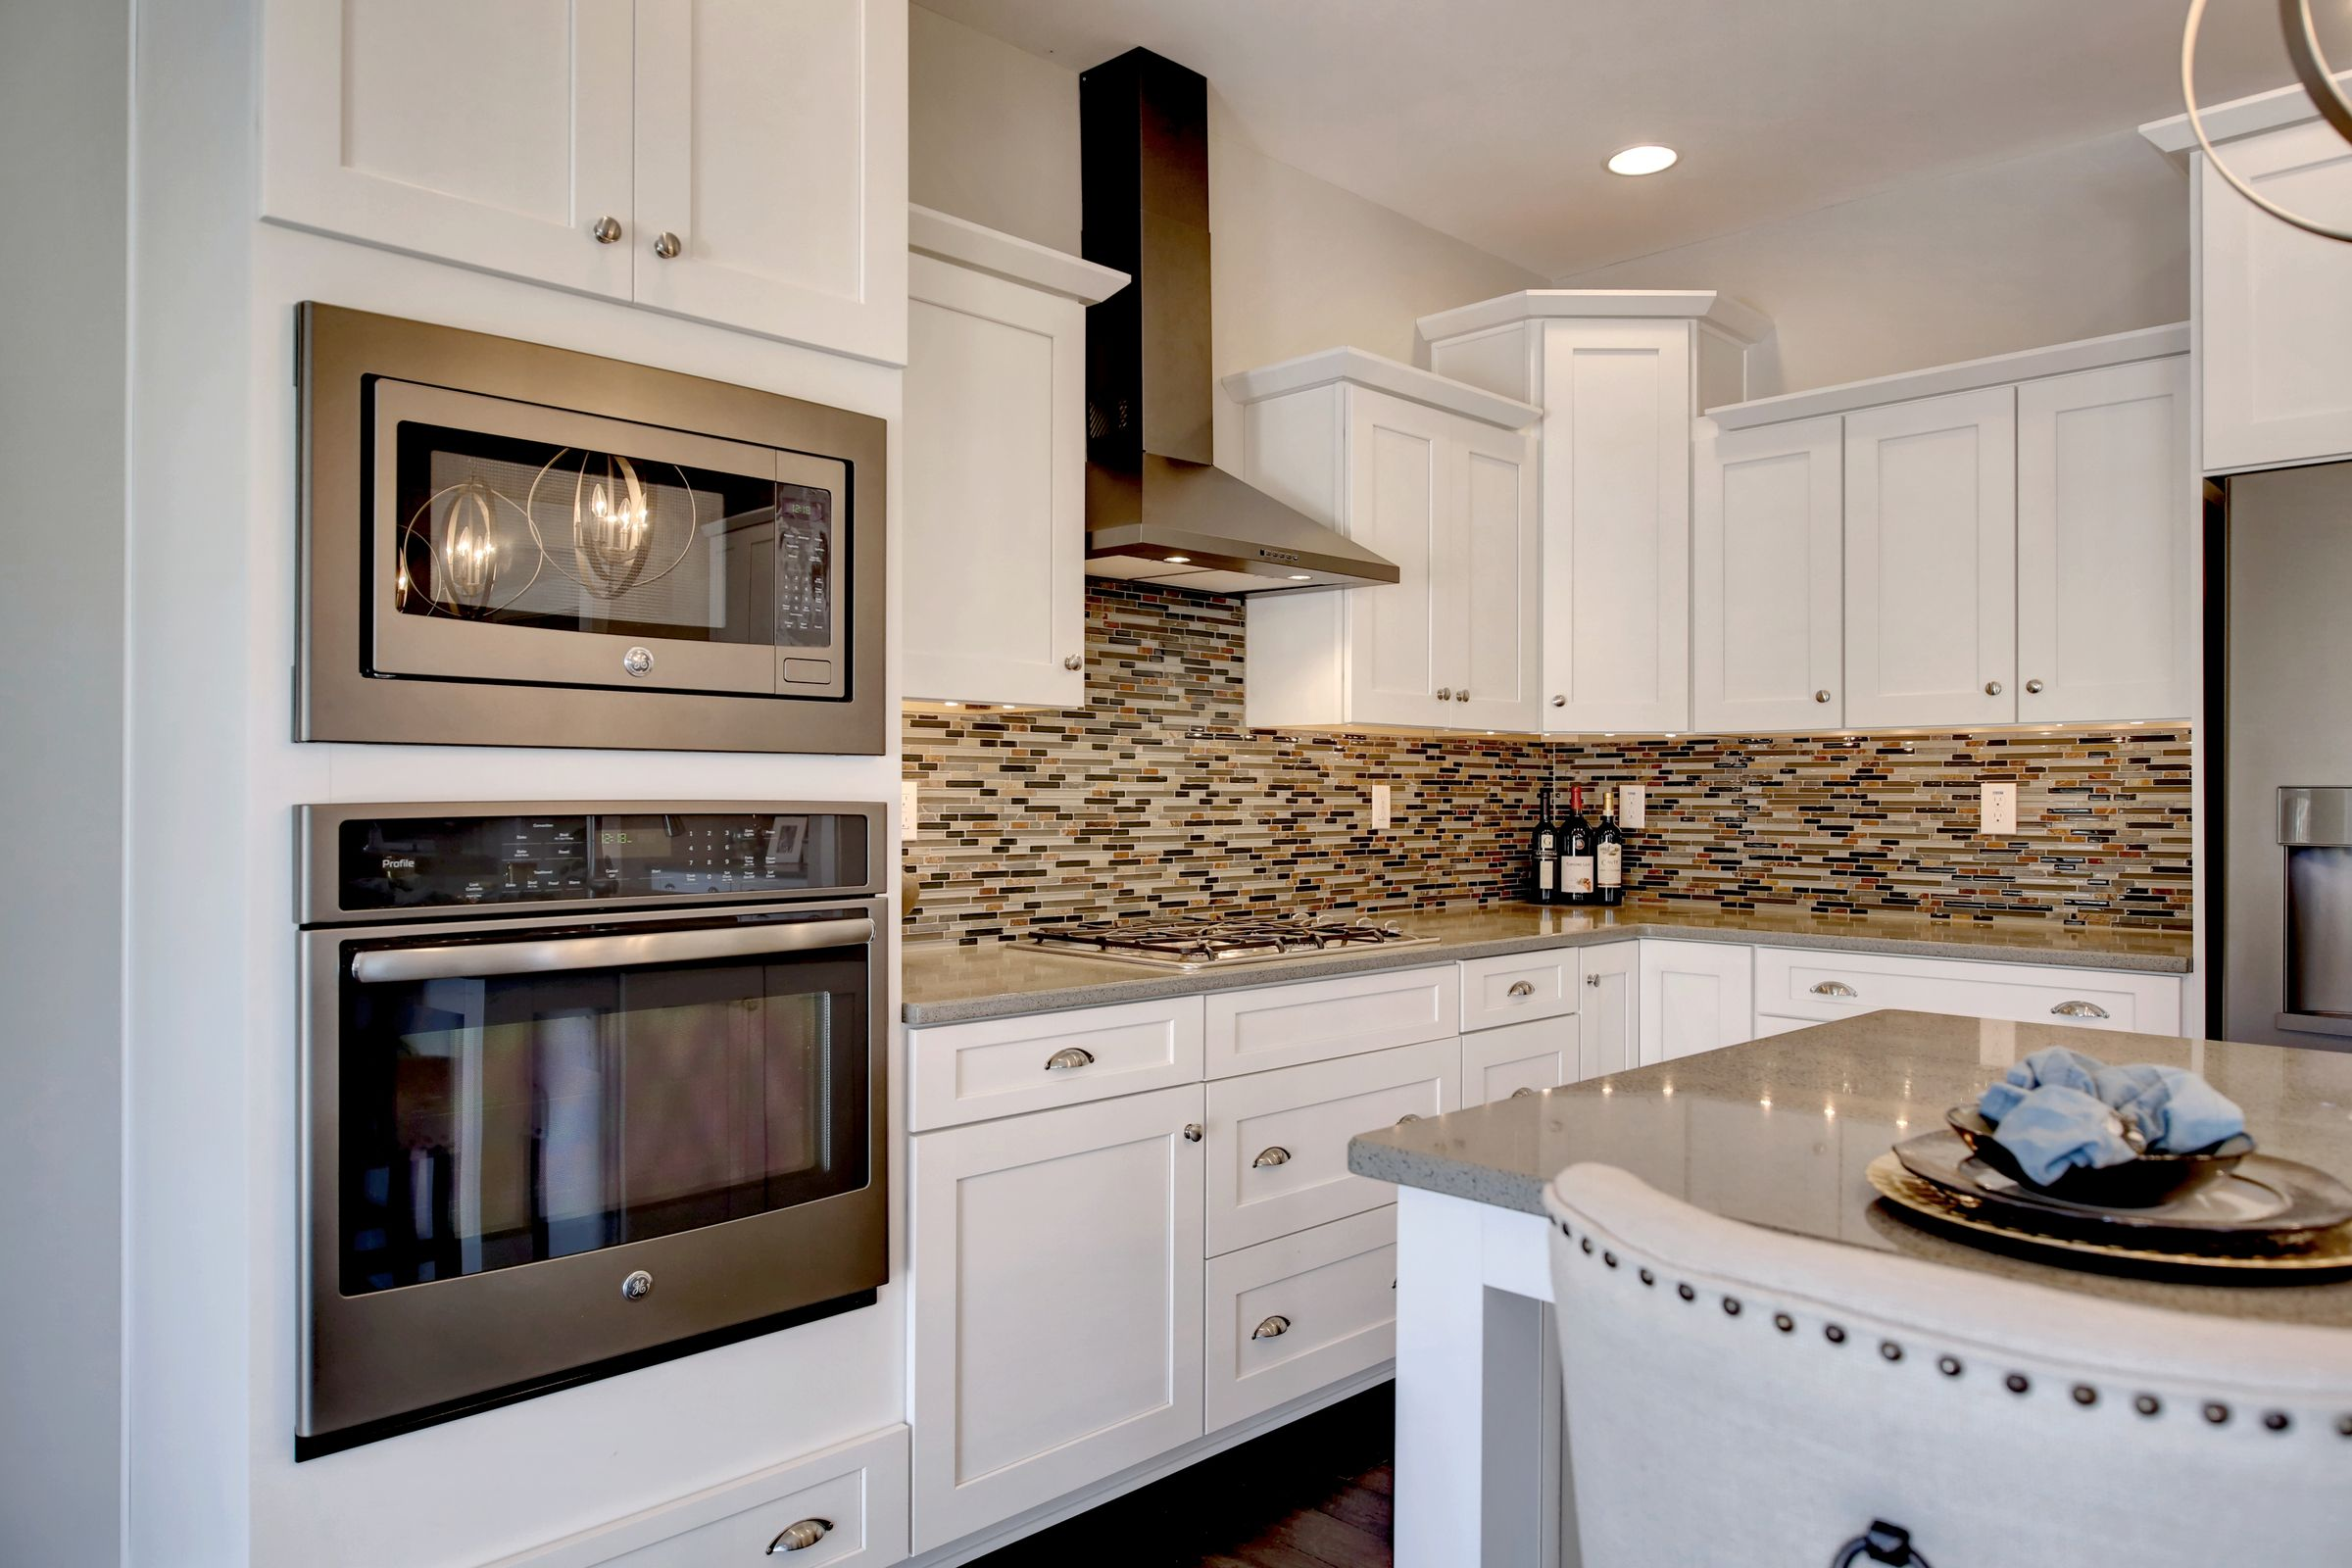 Kitchen featured in the Ethan Bordeaux By Keystone Custom Homes in Lancaster, PA